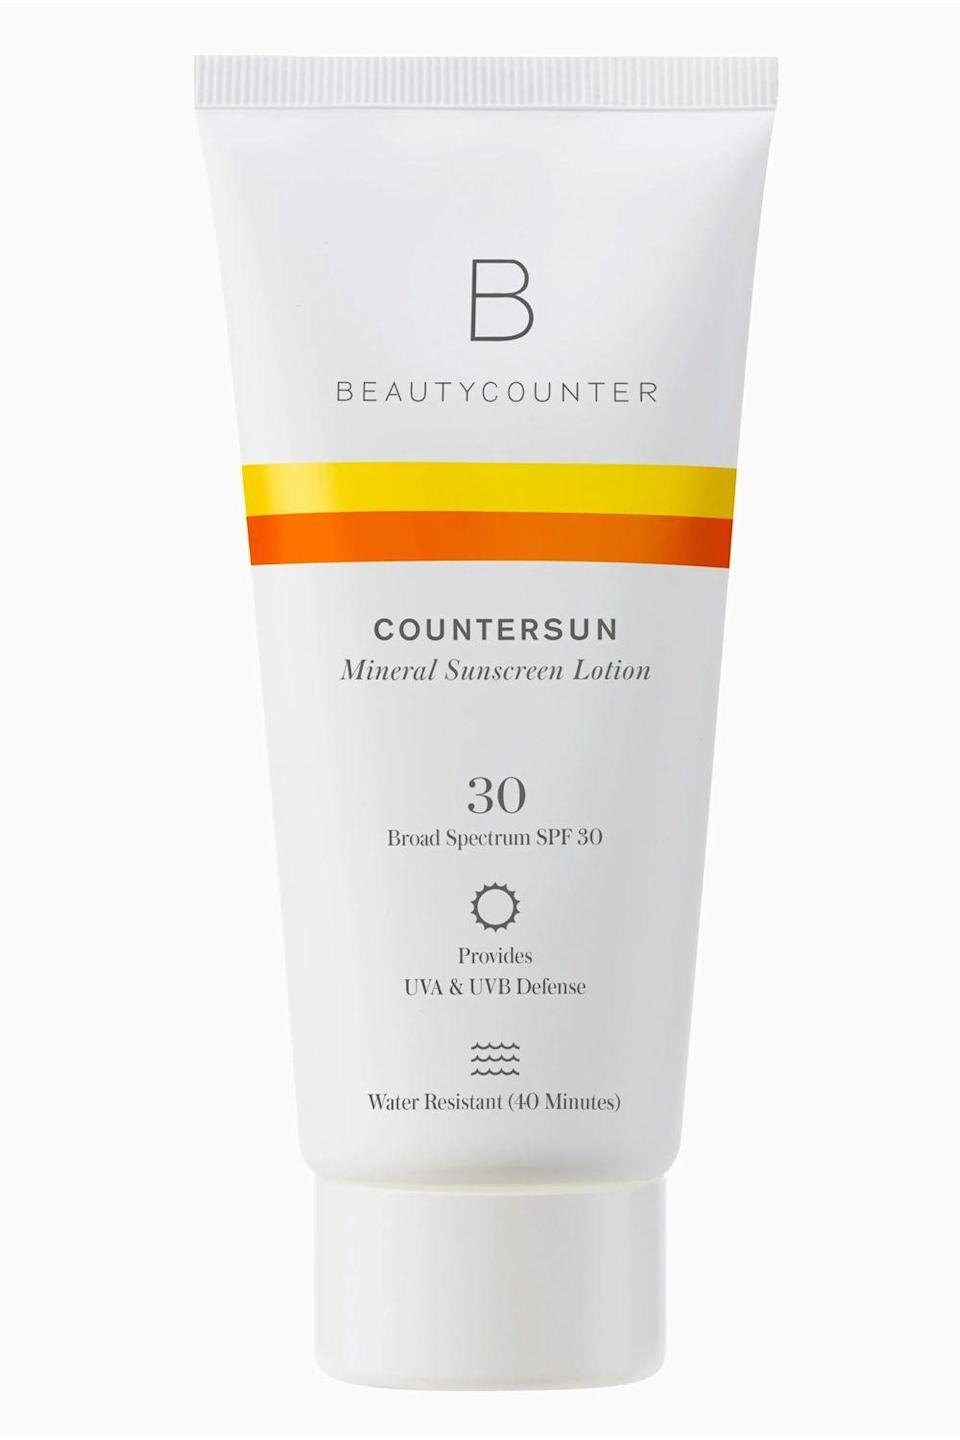 "<p>beautycounter.com</p><p><strong>$25.00</strong></p><p><a href=""https://go.redirectingat.com?id=74968X1596630&url=https%3A%2F%2Fwww.beautycounter.com%2Fproduct%2Fcountersun-mineral-sunscreen-lotion-spf-30-travel-size&sref=https%3A%2F%2Fwww.cosmopolitan.com%2Fstyle-beauty%2Fbeauty%2Fg35492705%2Fhauliday-winter-skincare-deals-2021%2F"" rel=""nofollow noopener"" target=""_blank"" data-ylk=""slk:Shop Now"" class=""link rapid-noclick-resp"">Shop Now</a></p><p>Reminder: You should be wearing <a href=""https://www.cosmopolitan.com/style-beauty/beauty/advice/g3973/best-new-sunscreens/"" rel=""nofollow noopener"" target=""_blank"" data-ylk=""slk:SPF"" class=""link rapid-noclick-resp"">SPF</a> 30 or more all year long—yep, even in the winter. Sun damage is cumulative, so every little bit of unprotected exposure puts you at risk for skin damage, and more seriously, skin cancer. Each morning apply a nickel-size blob of this SPF to your face, neck, and chest—it's made with 100 percent zinc and moisturizing ingredients like castor oil and aloe vera.</p><p><strong>✨PROMOTION:</strong> Get 20 percent off your first order with the code HAULIDAY</p>"